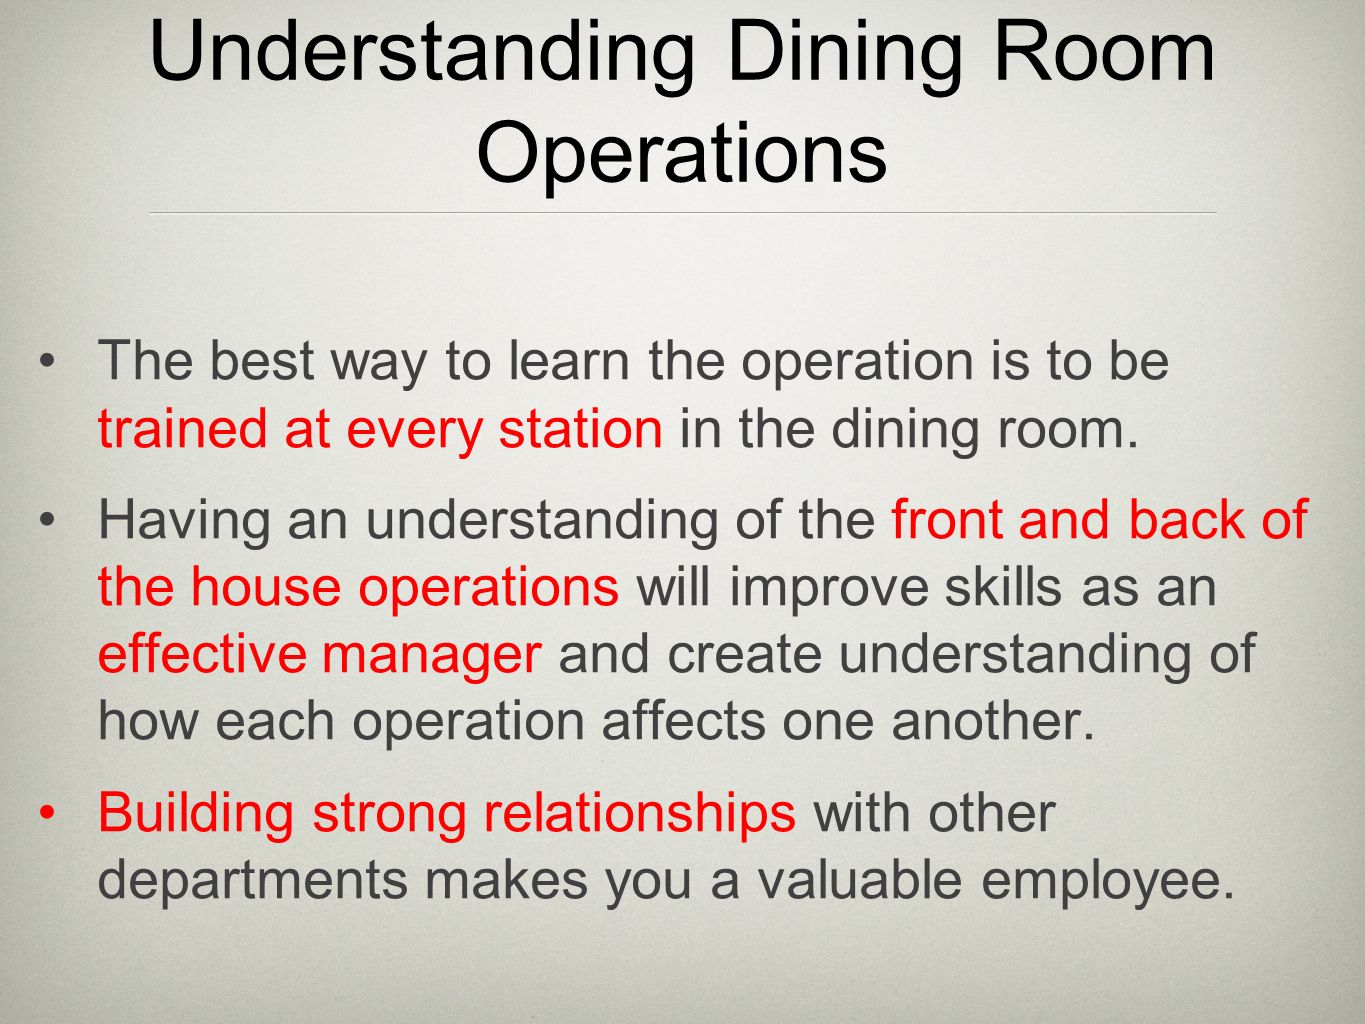 Understanding Dining Room Operations The best way to learn the operation is to be trained at every station in the dining room.